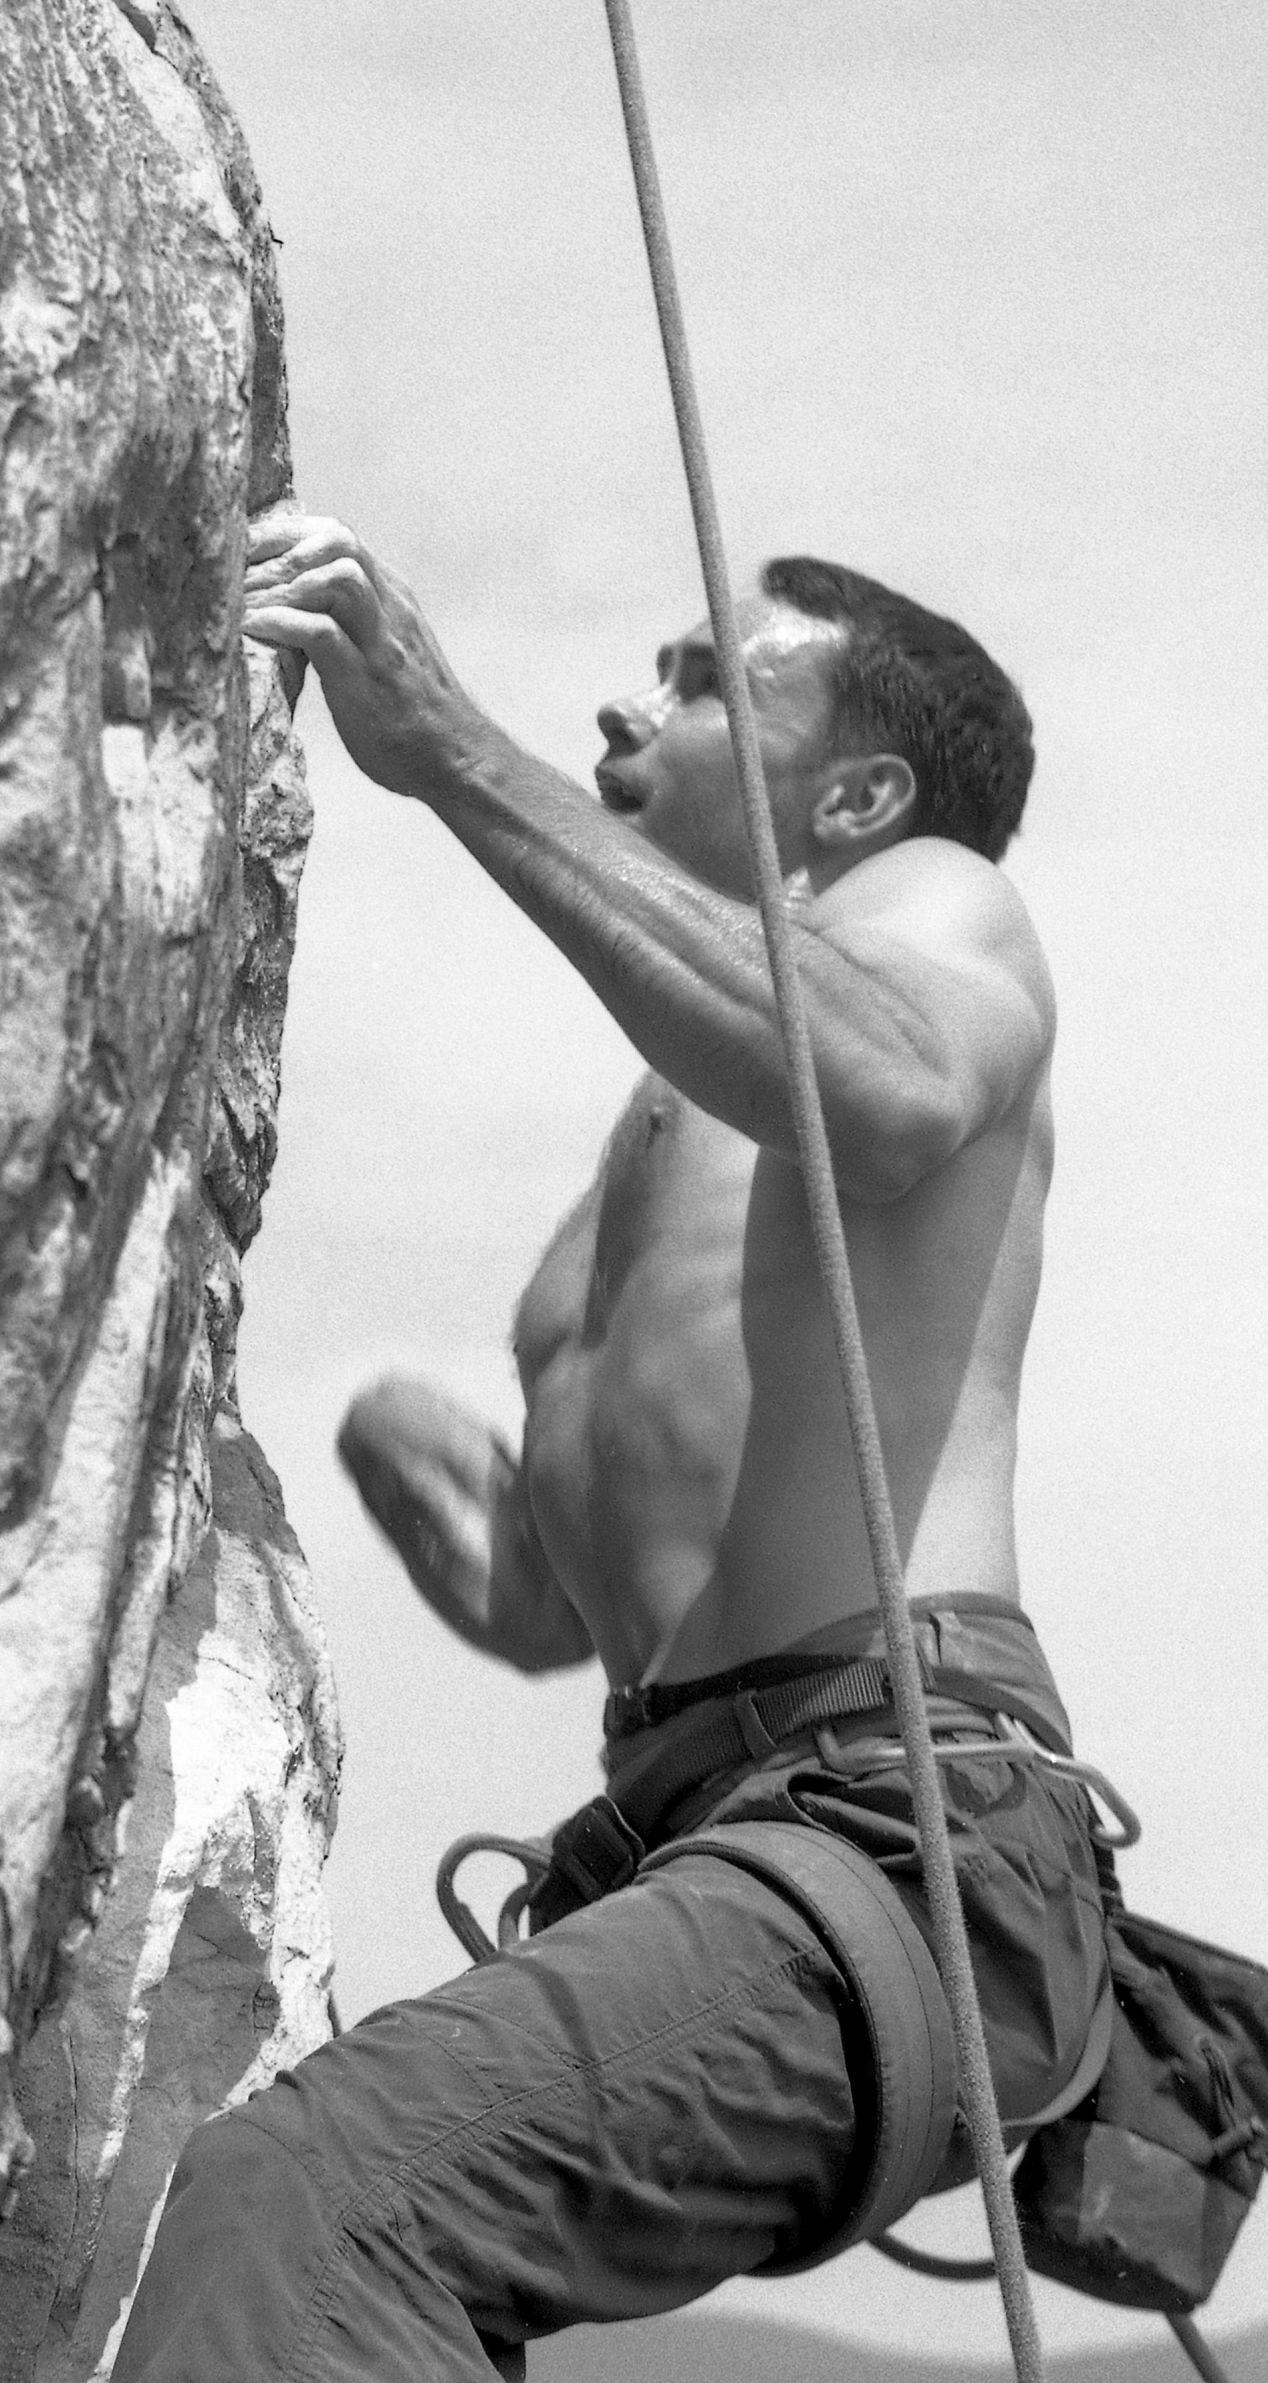 """Chris' final move on the """"Balance of Power"""" (5.12a) route."""